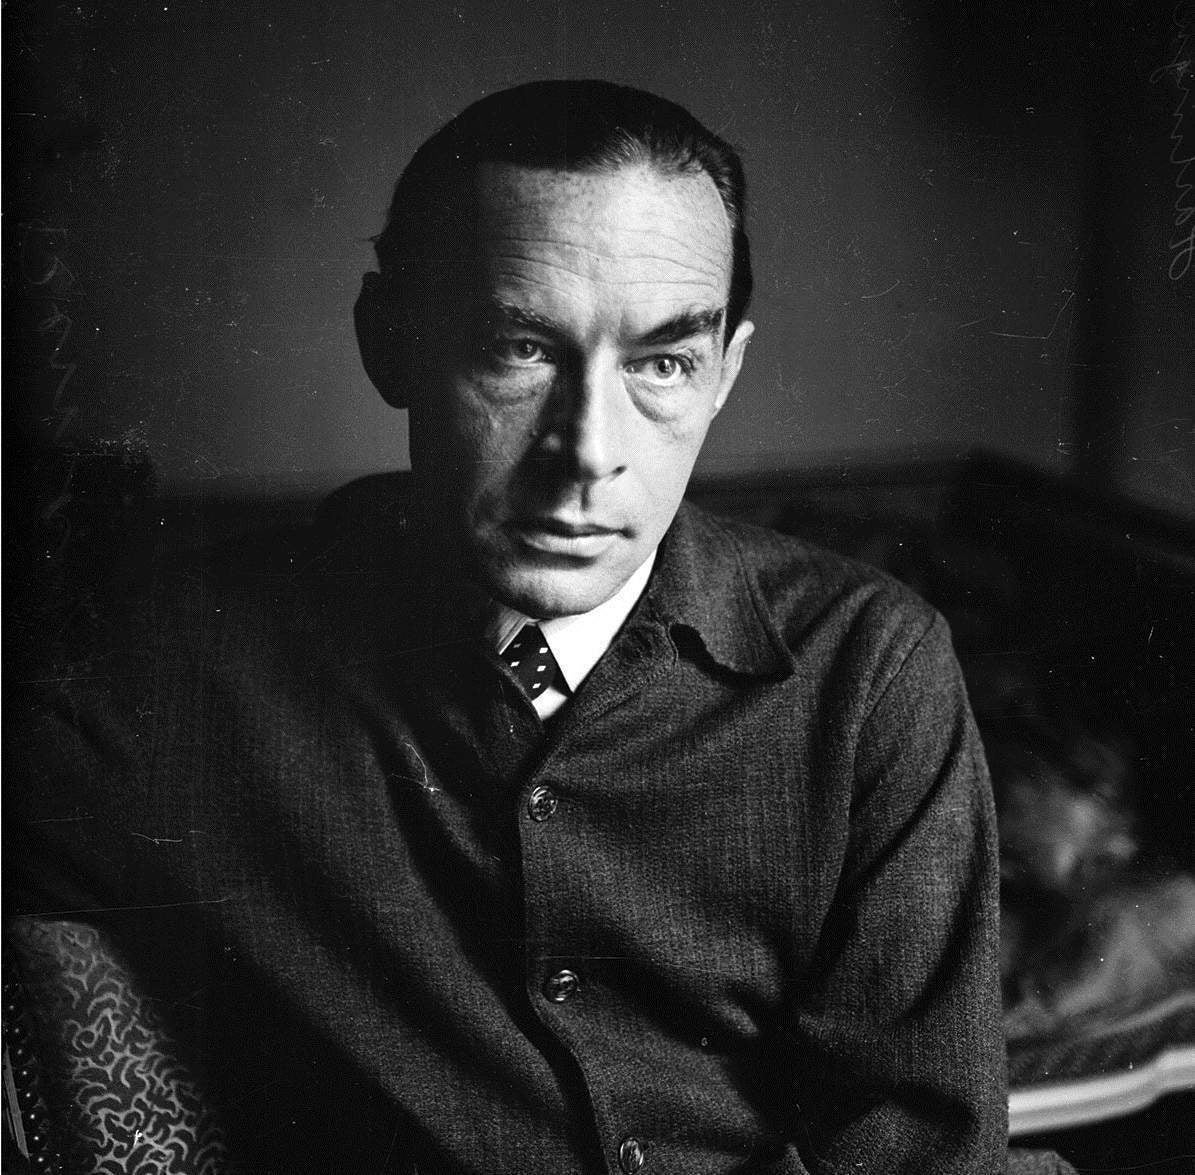 The Promised Land: Erich Maria Remarque's unfinished final book has a humane power